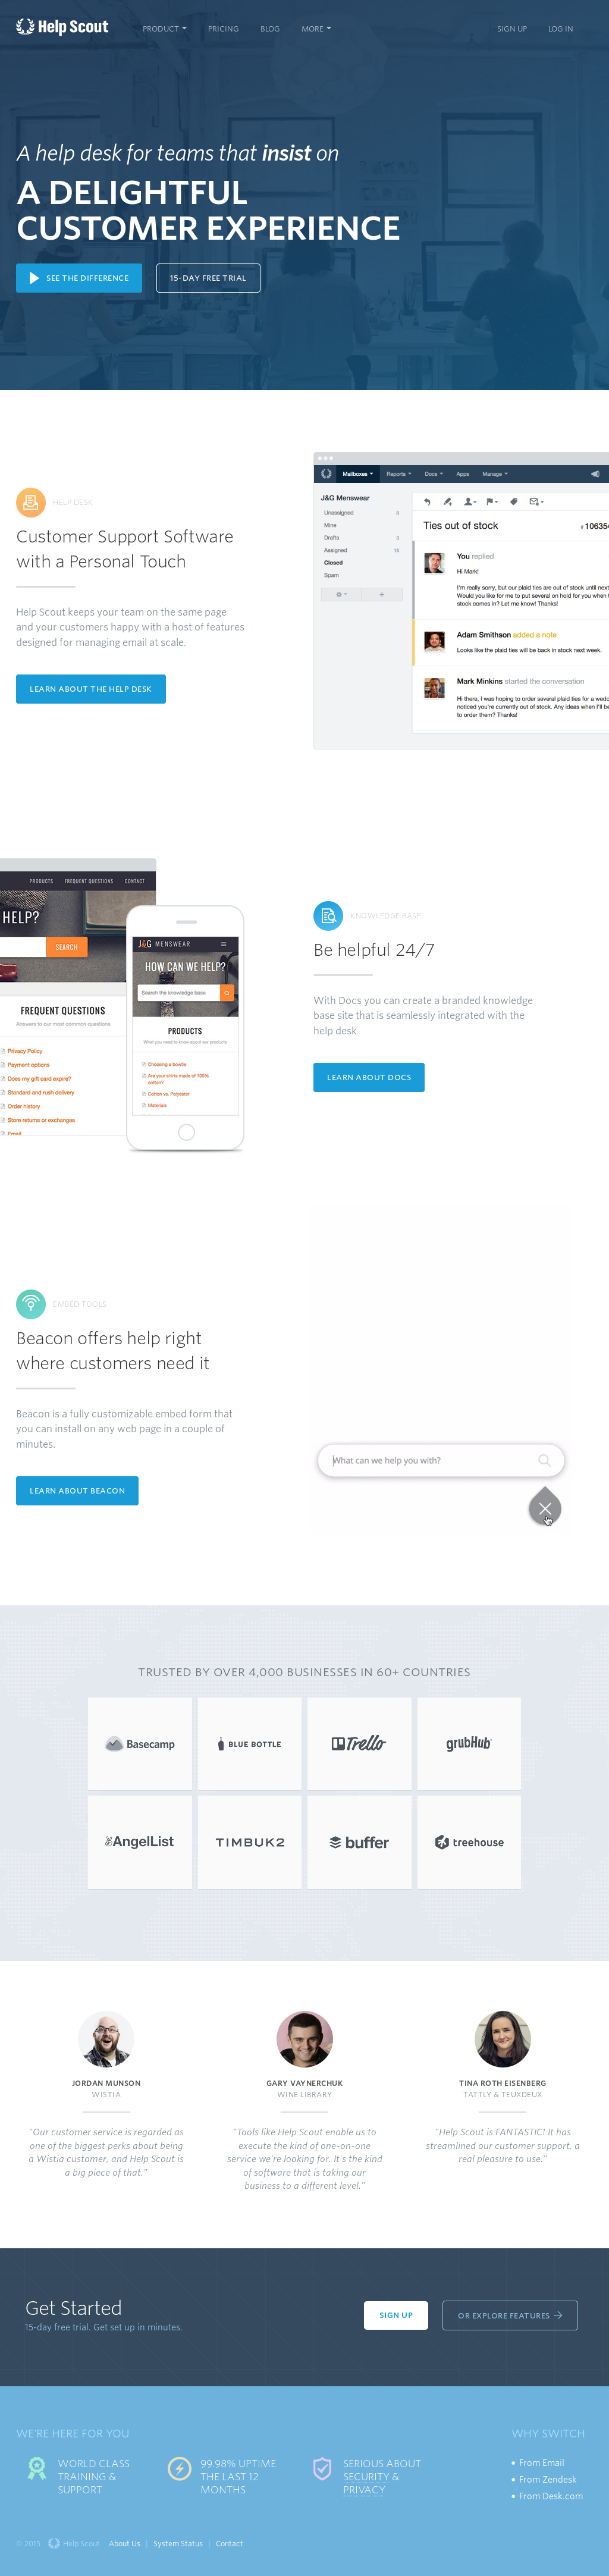 Helpscout Beacon 2.0 owler reports - help scout blog beacon 2.0 preview: the user